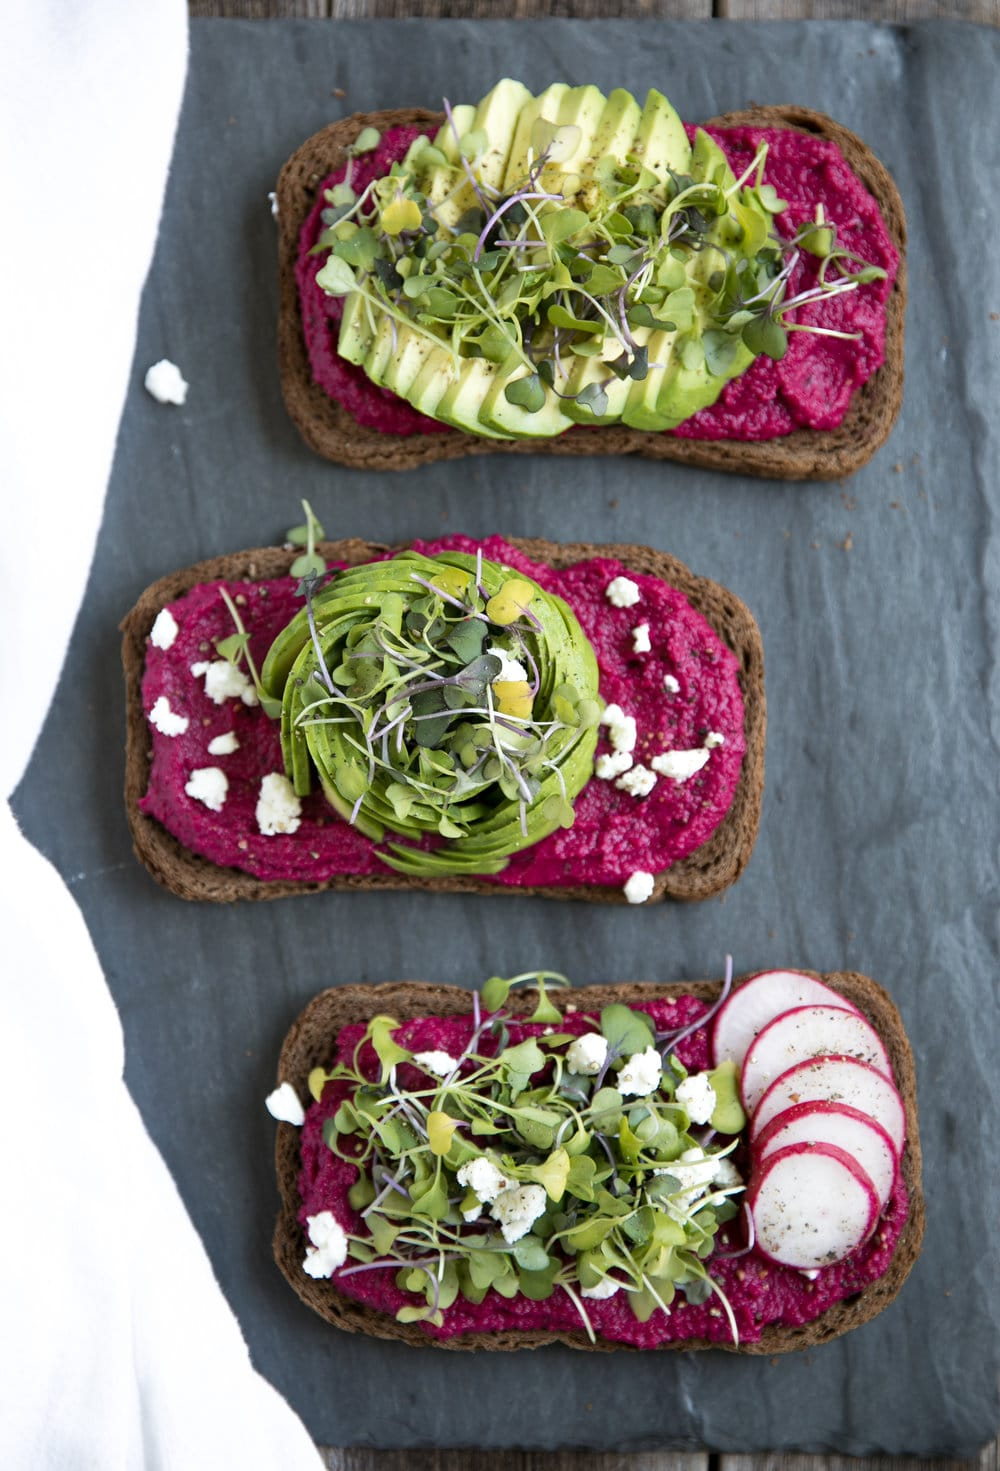 Avocado Toast with Beet Hummus